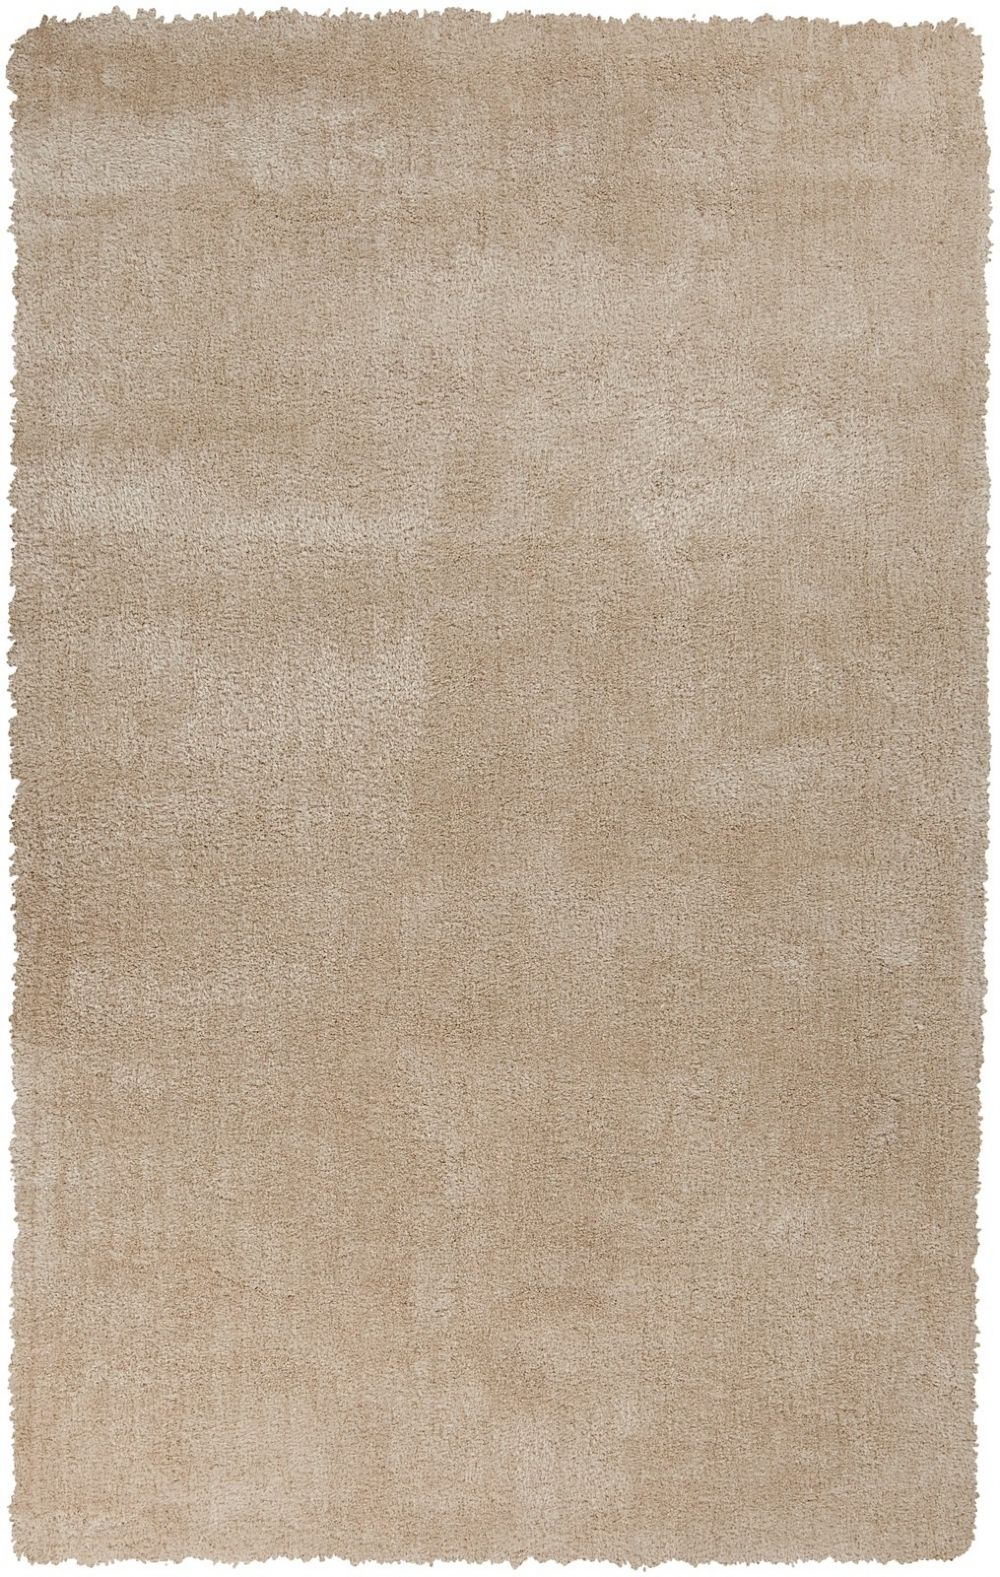 surya nimbus shag area rug collection